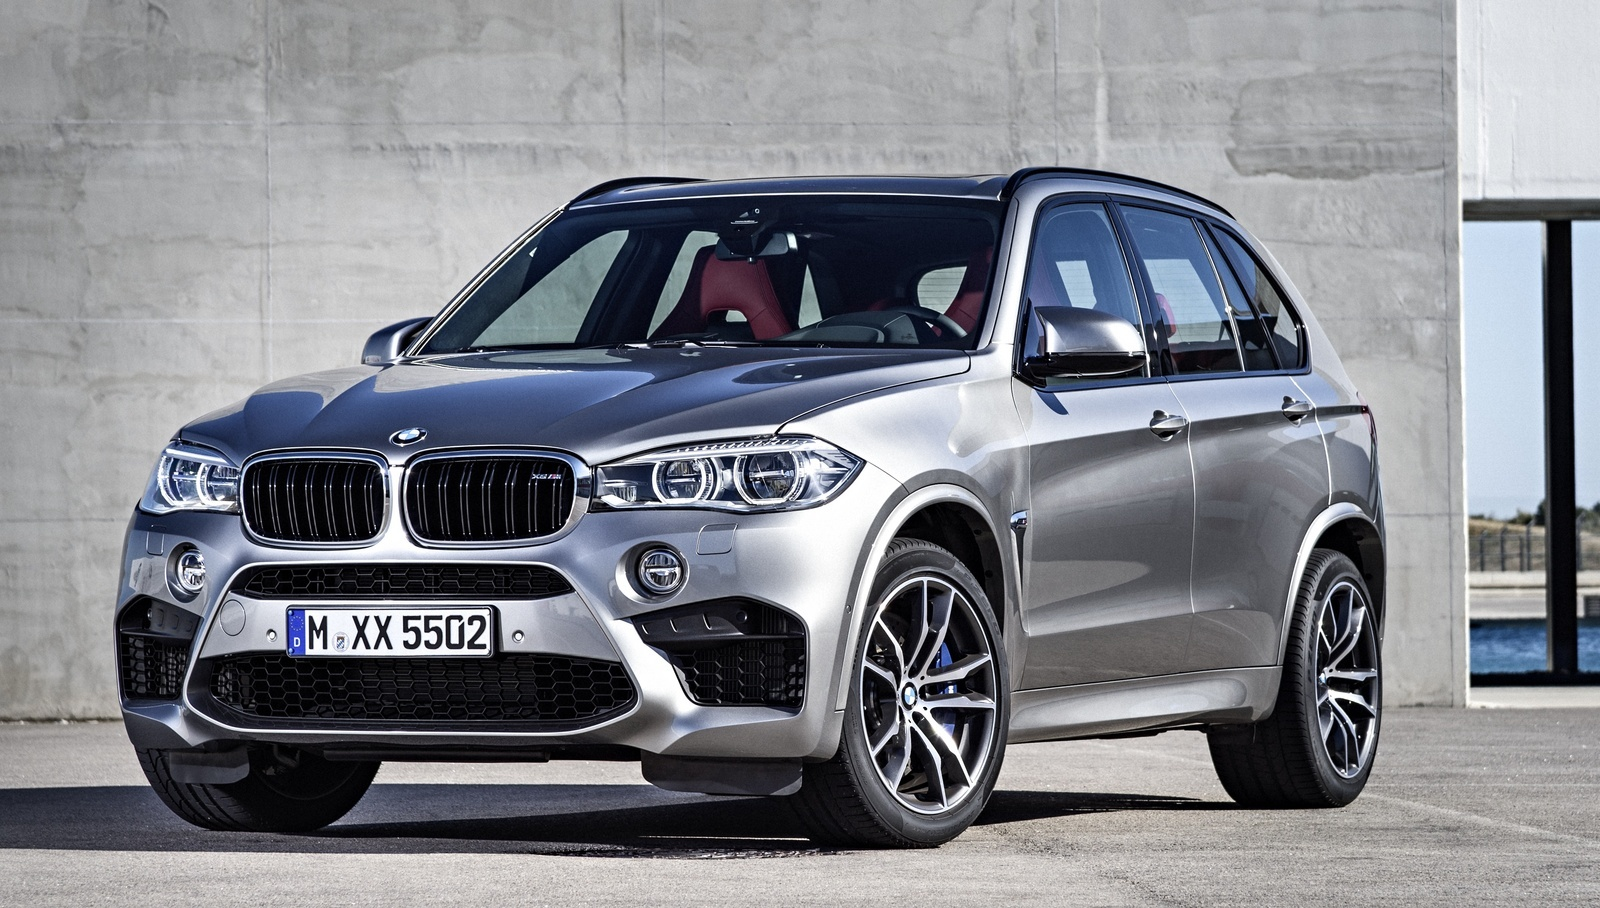 2015 BMW X5 M - Overview - CarGurus